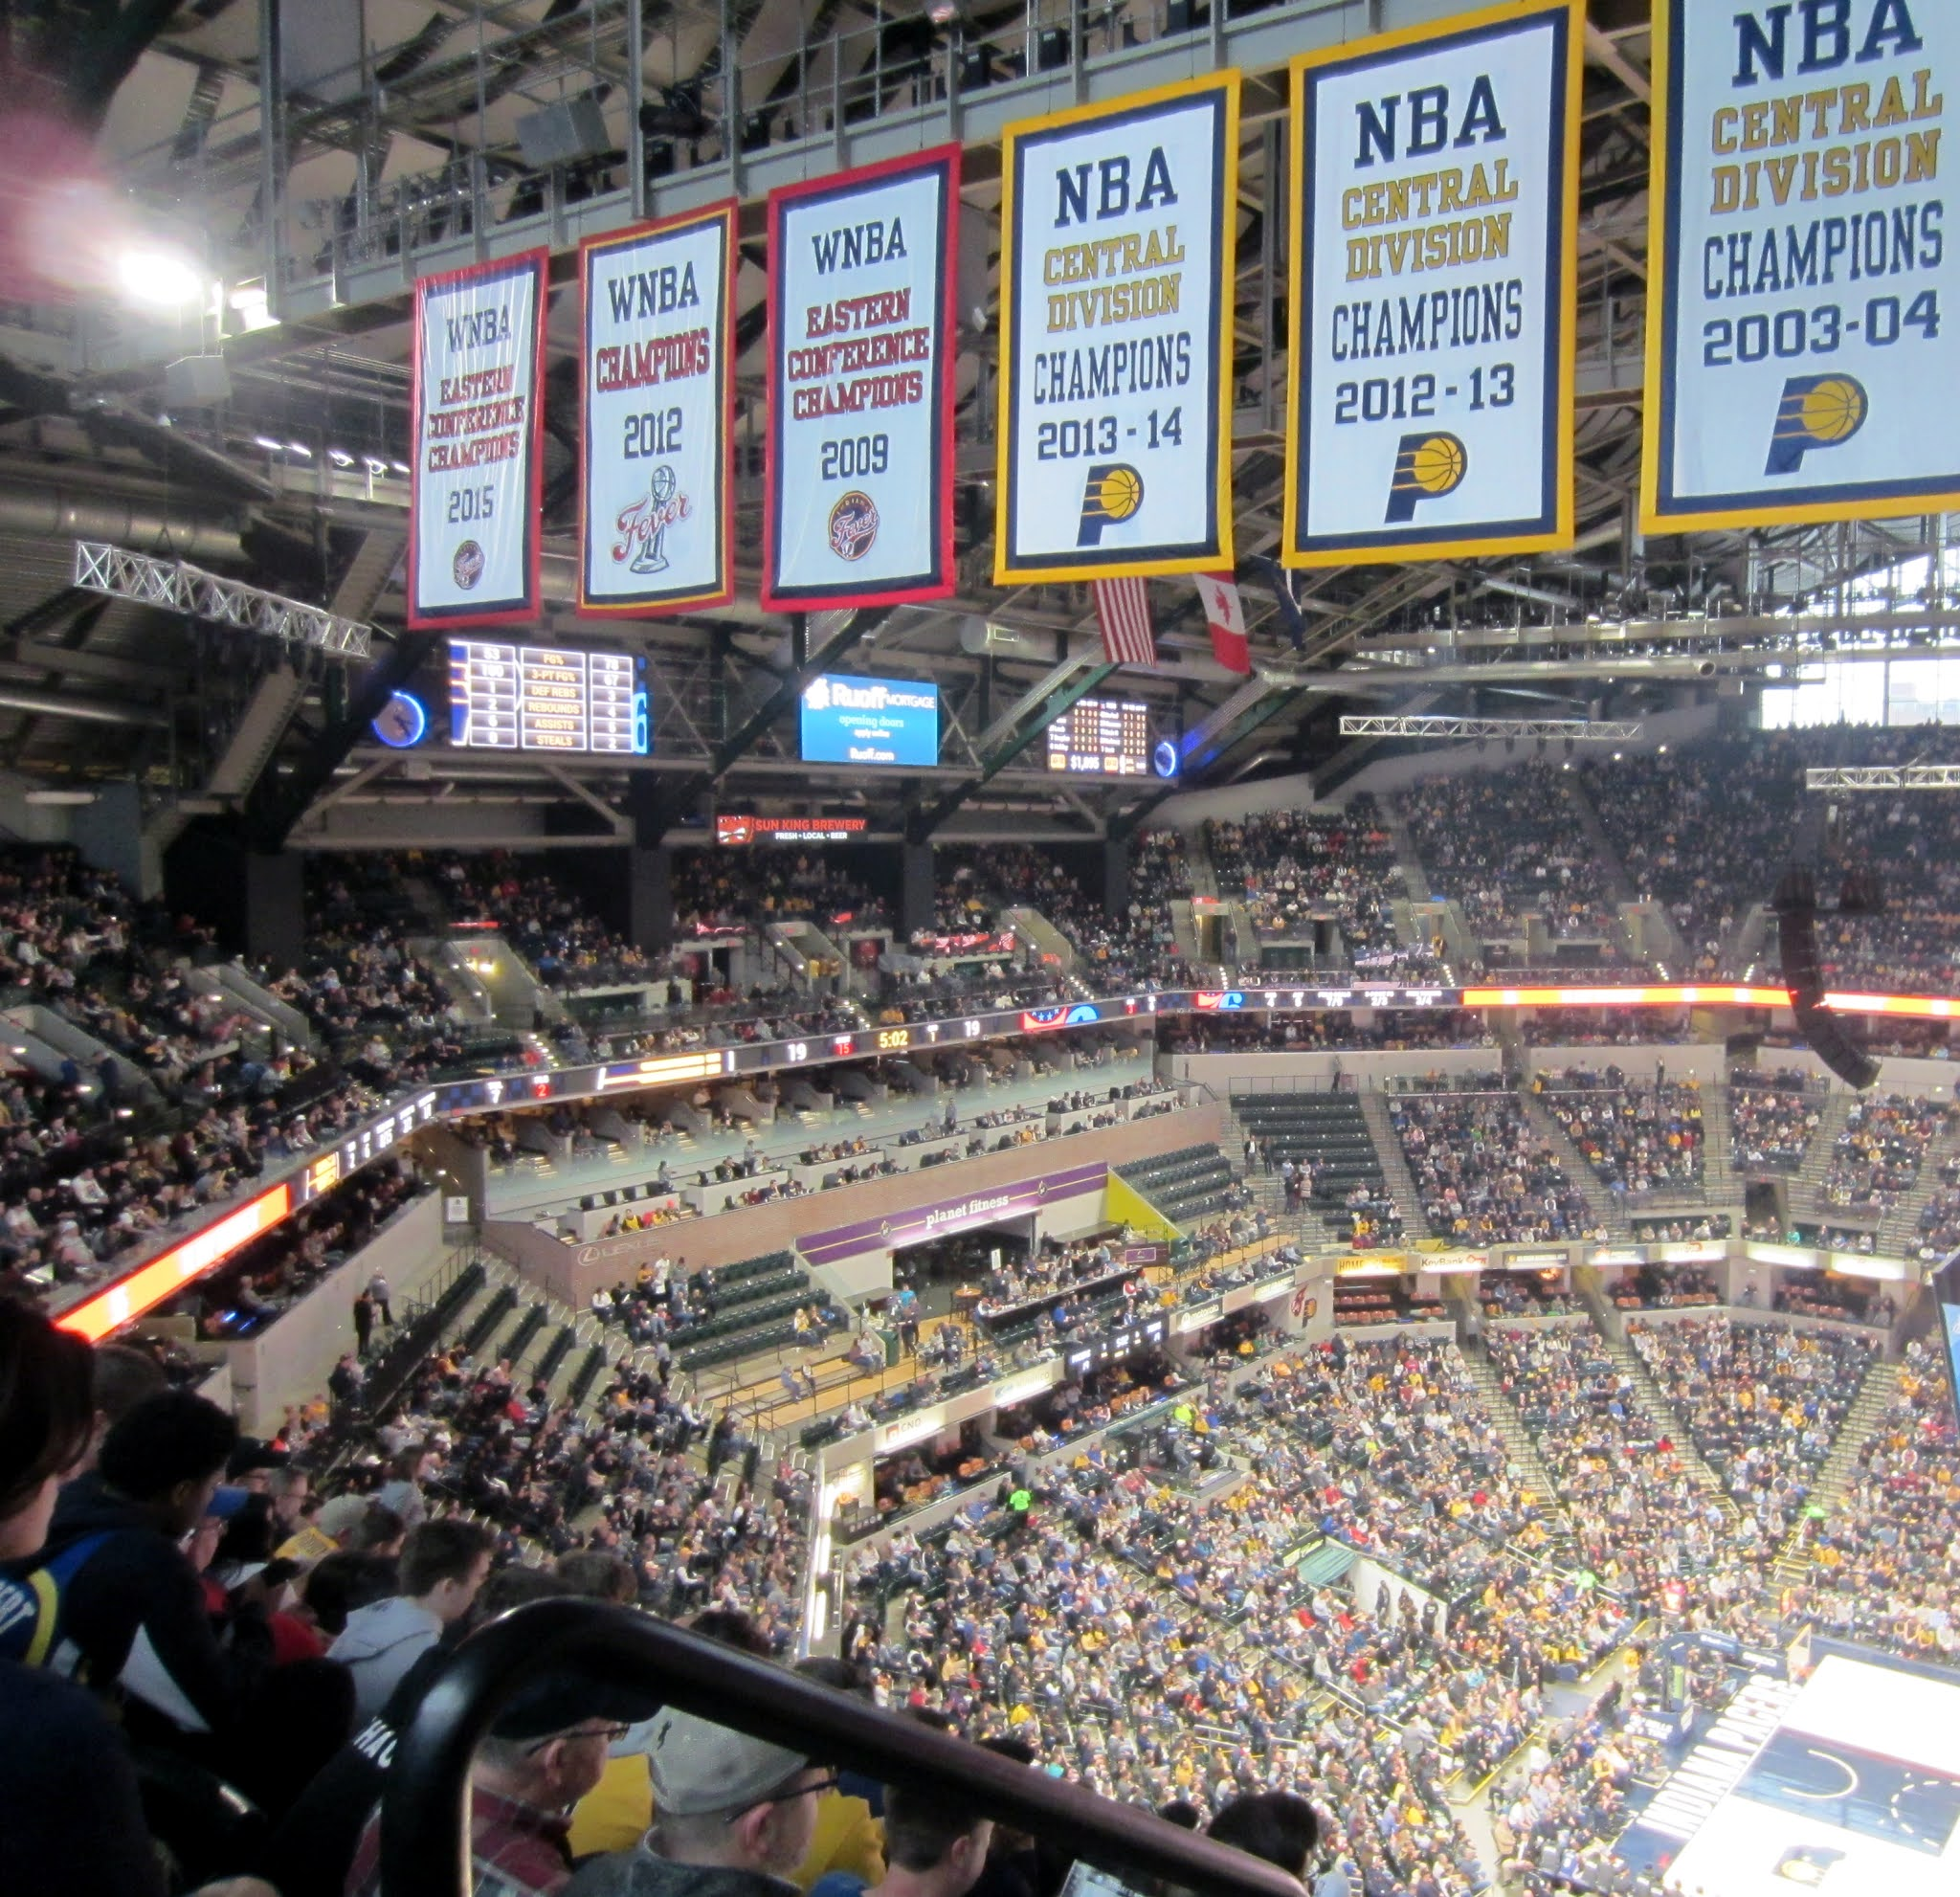 A look towards one of the suites at Bankers Life Fieldhouse